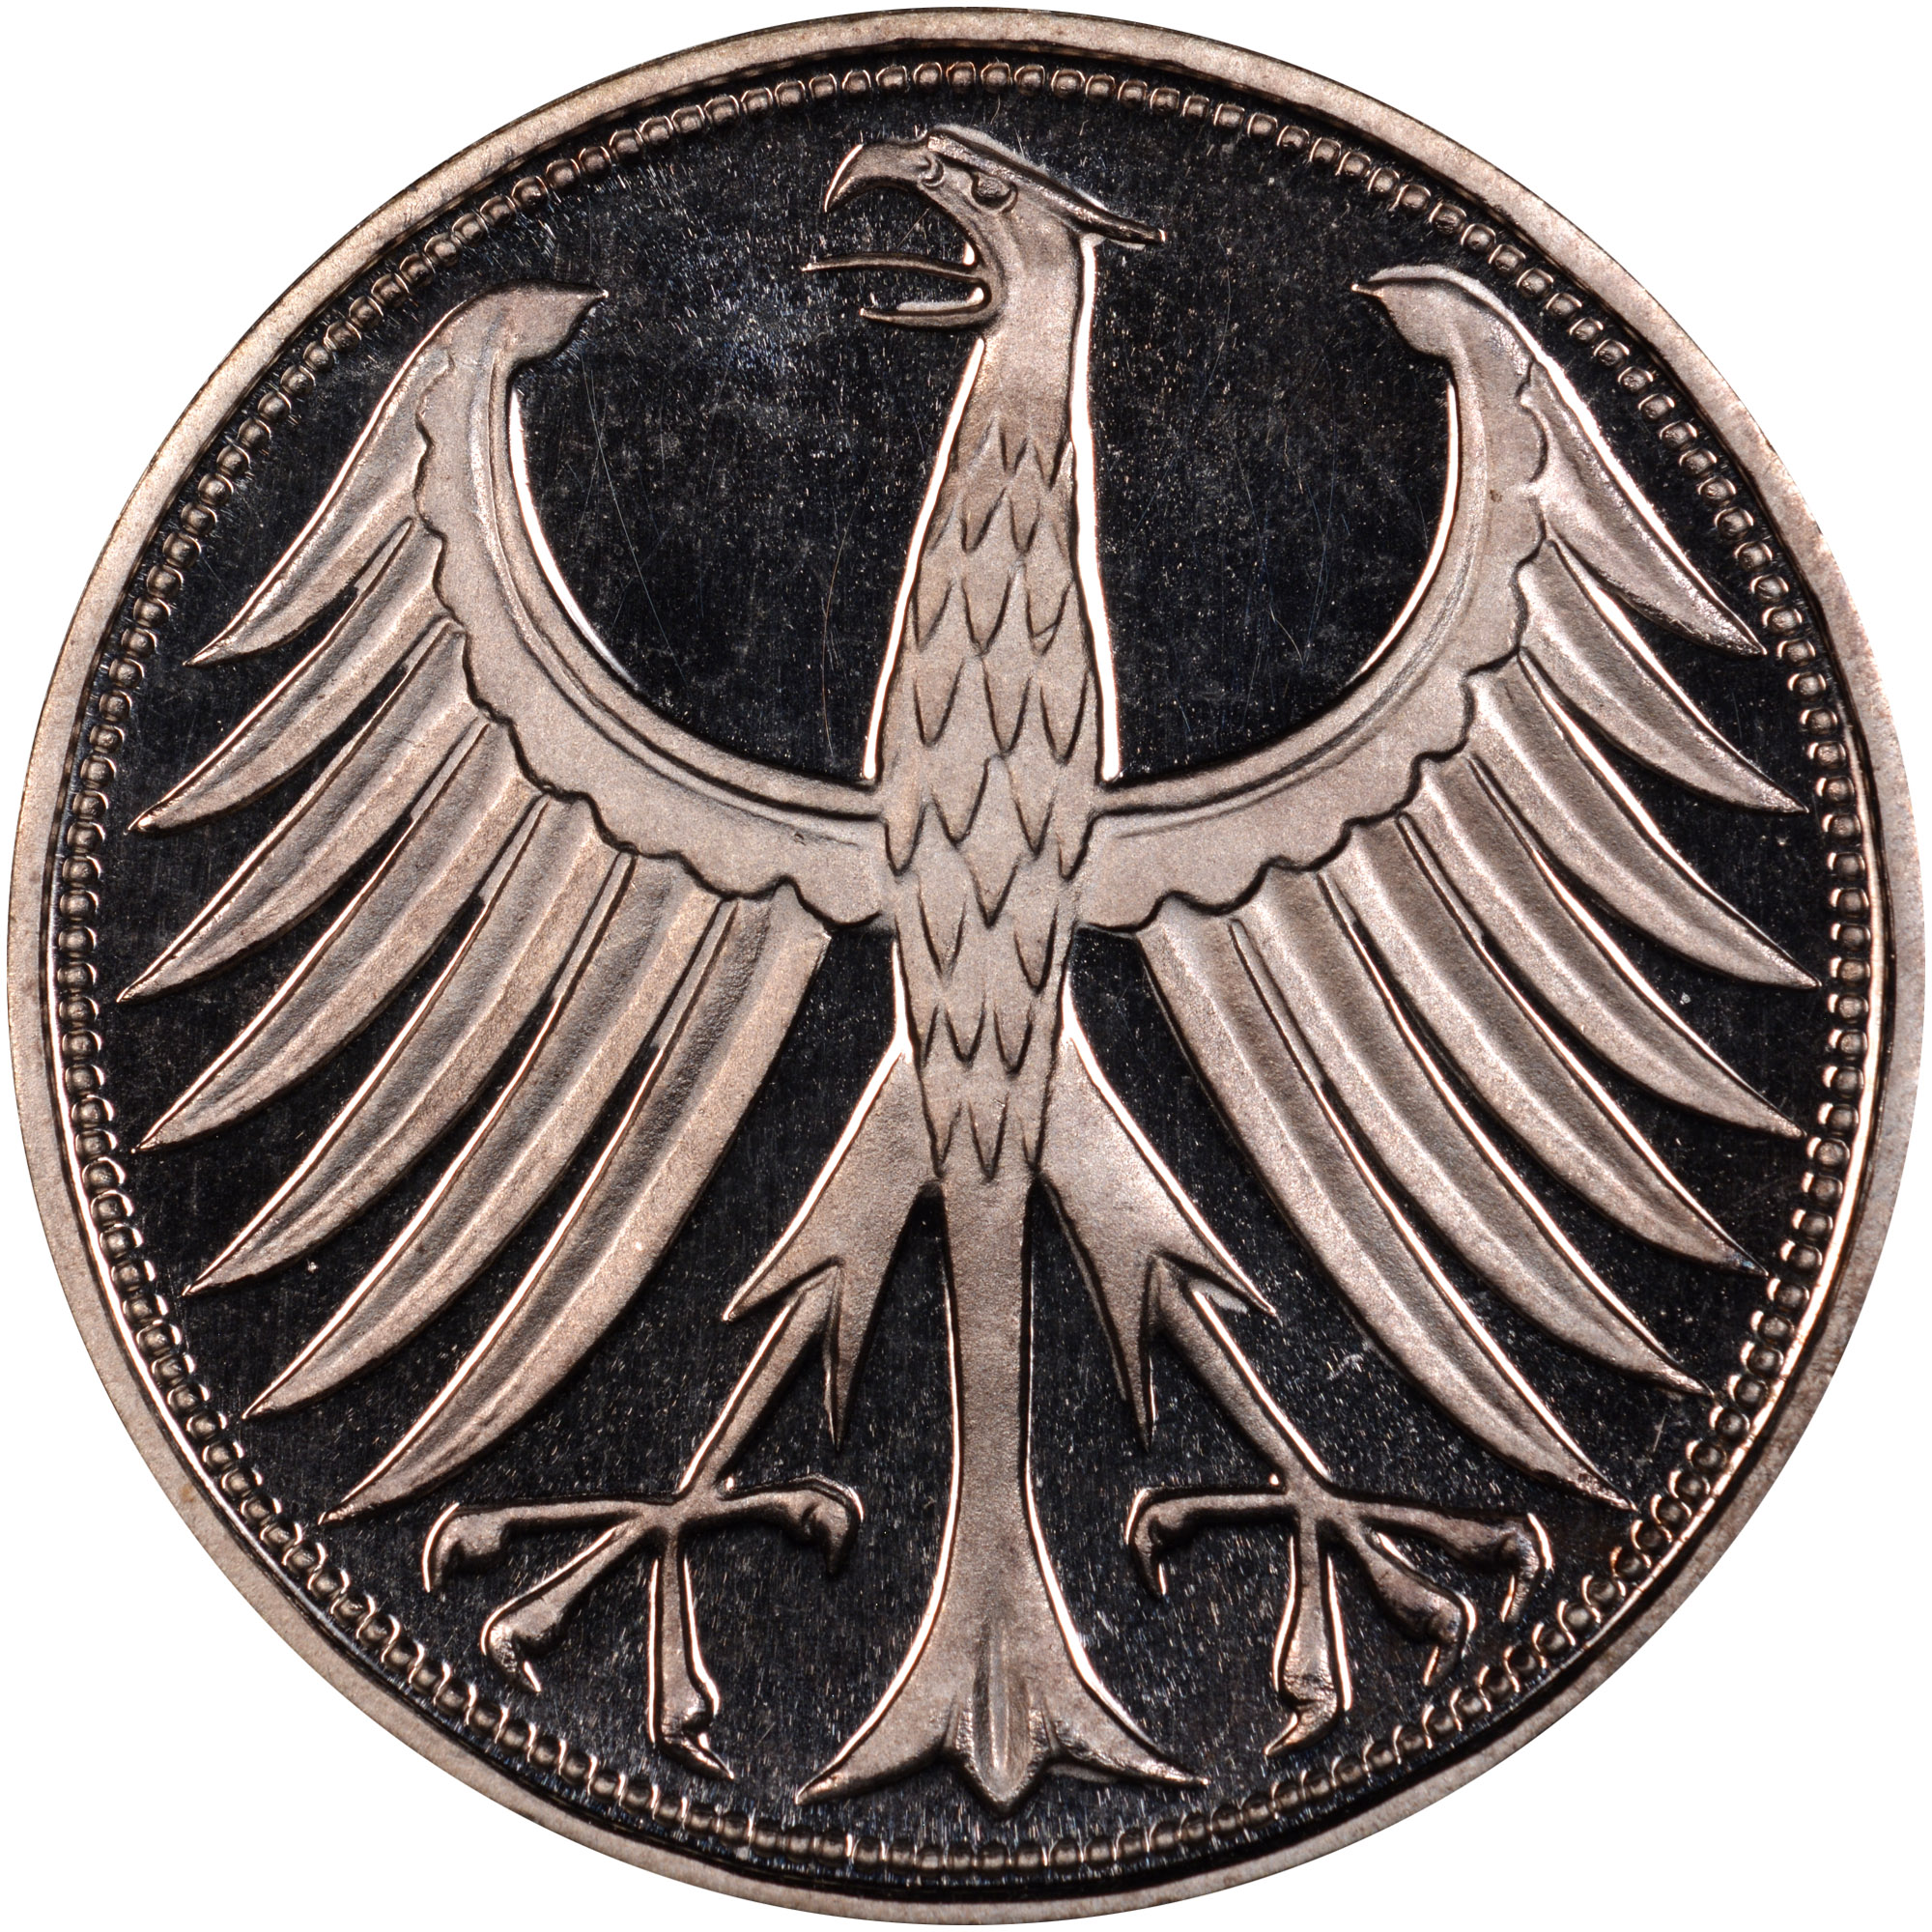 Germany federal republic 5 mark km 1121 prices values ngc germany federal republic 5 mark reverse buycottarizona